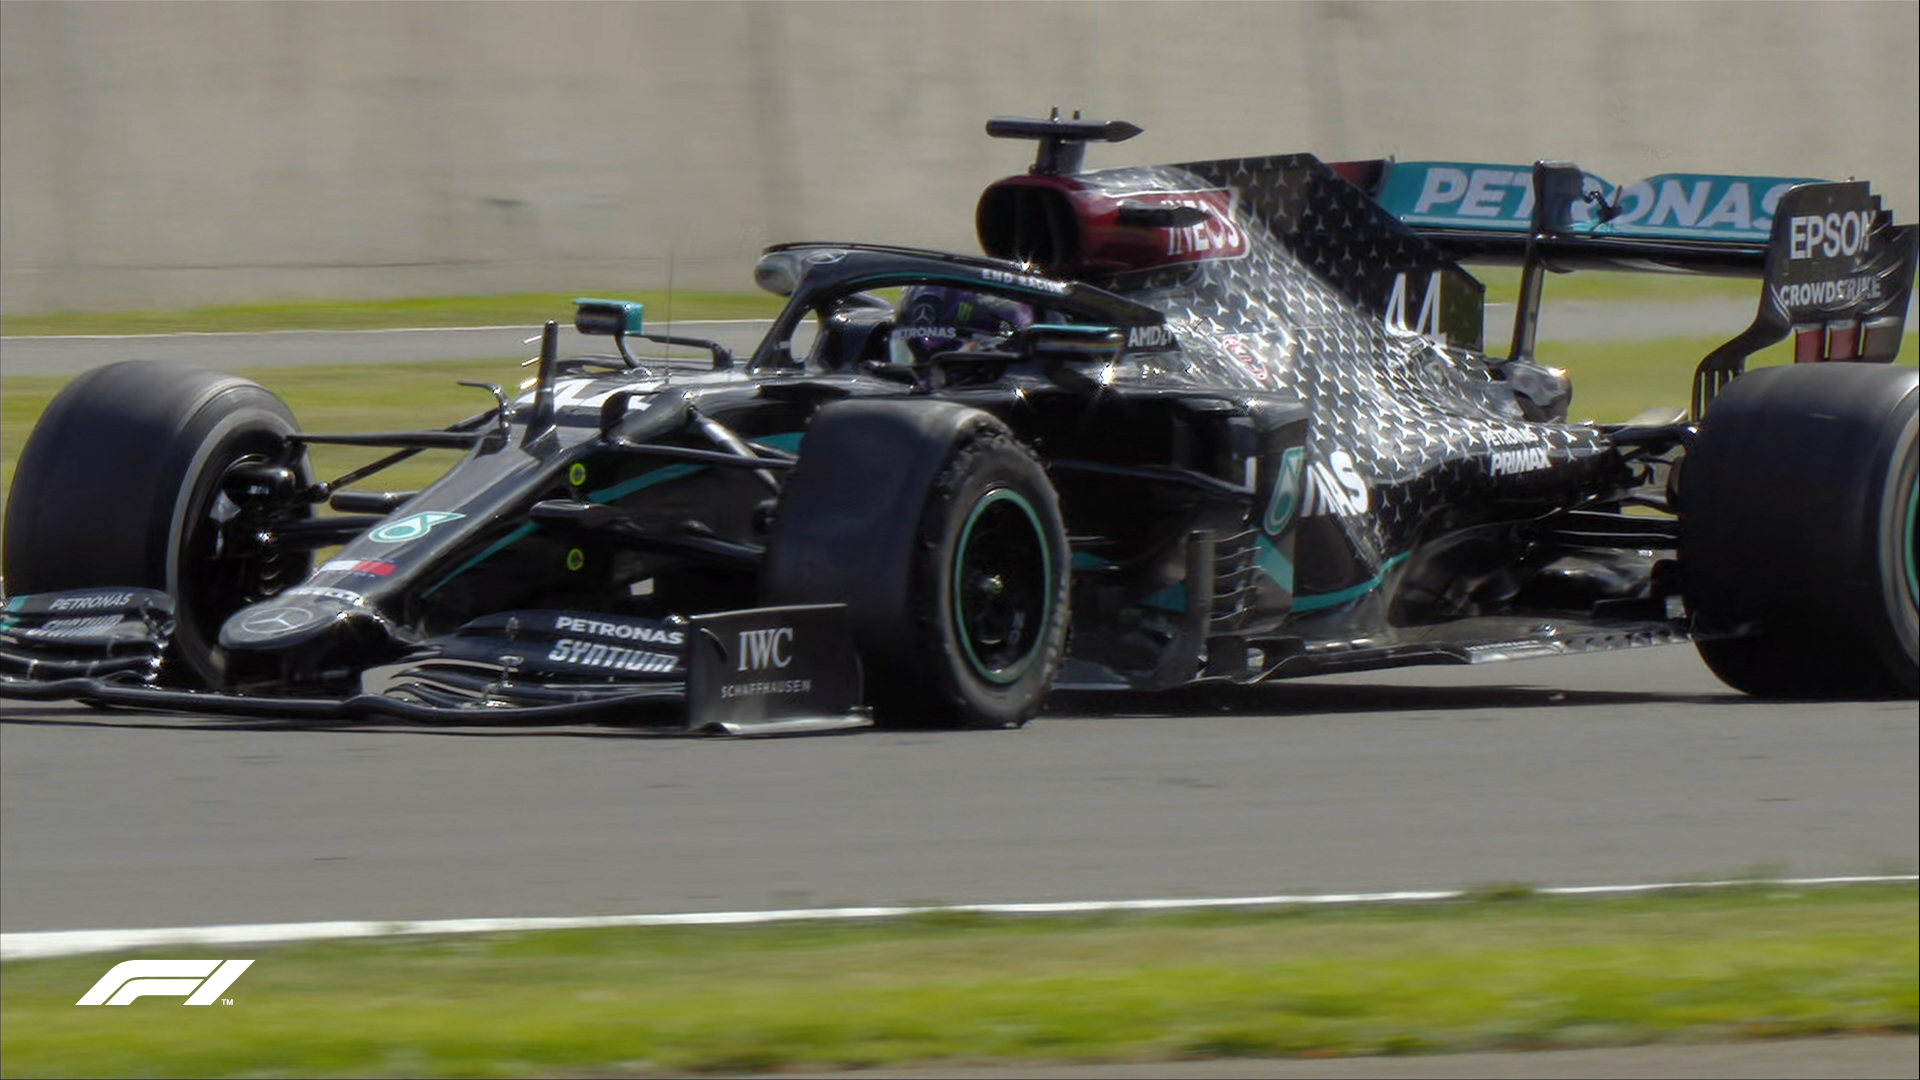 Lewis Hamilton won yet another race bookended with drama this season, as supersub Nico Hulkenburg doesnt even see the lights, Alexander Albon punts of